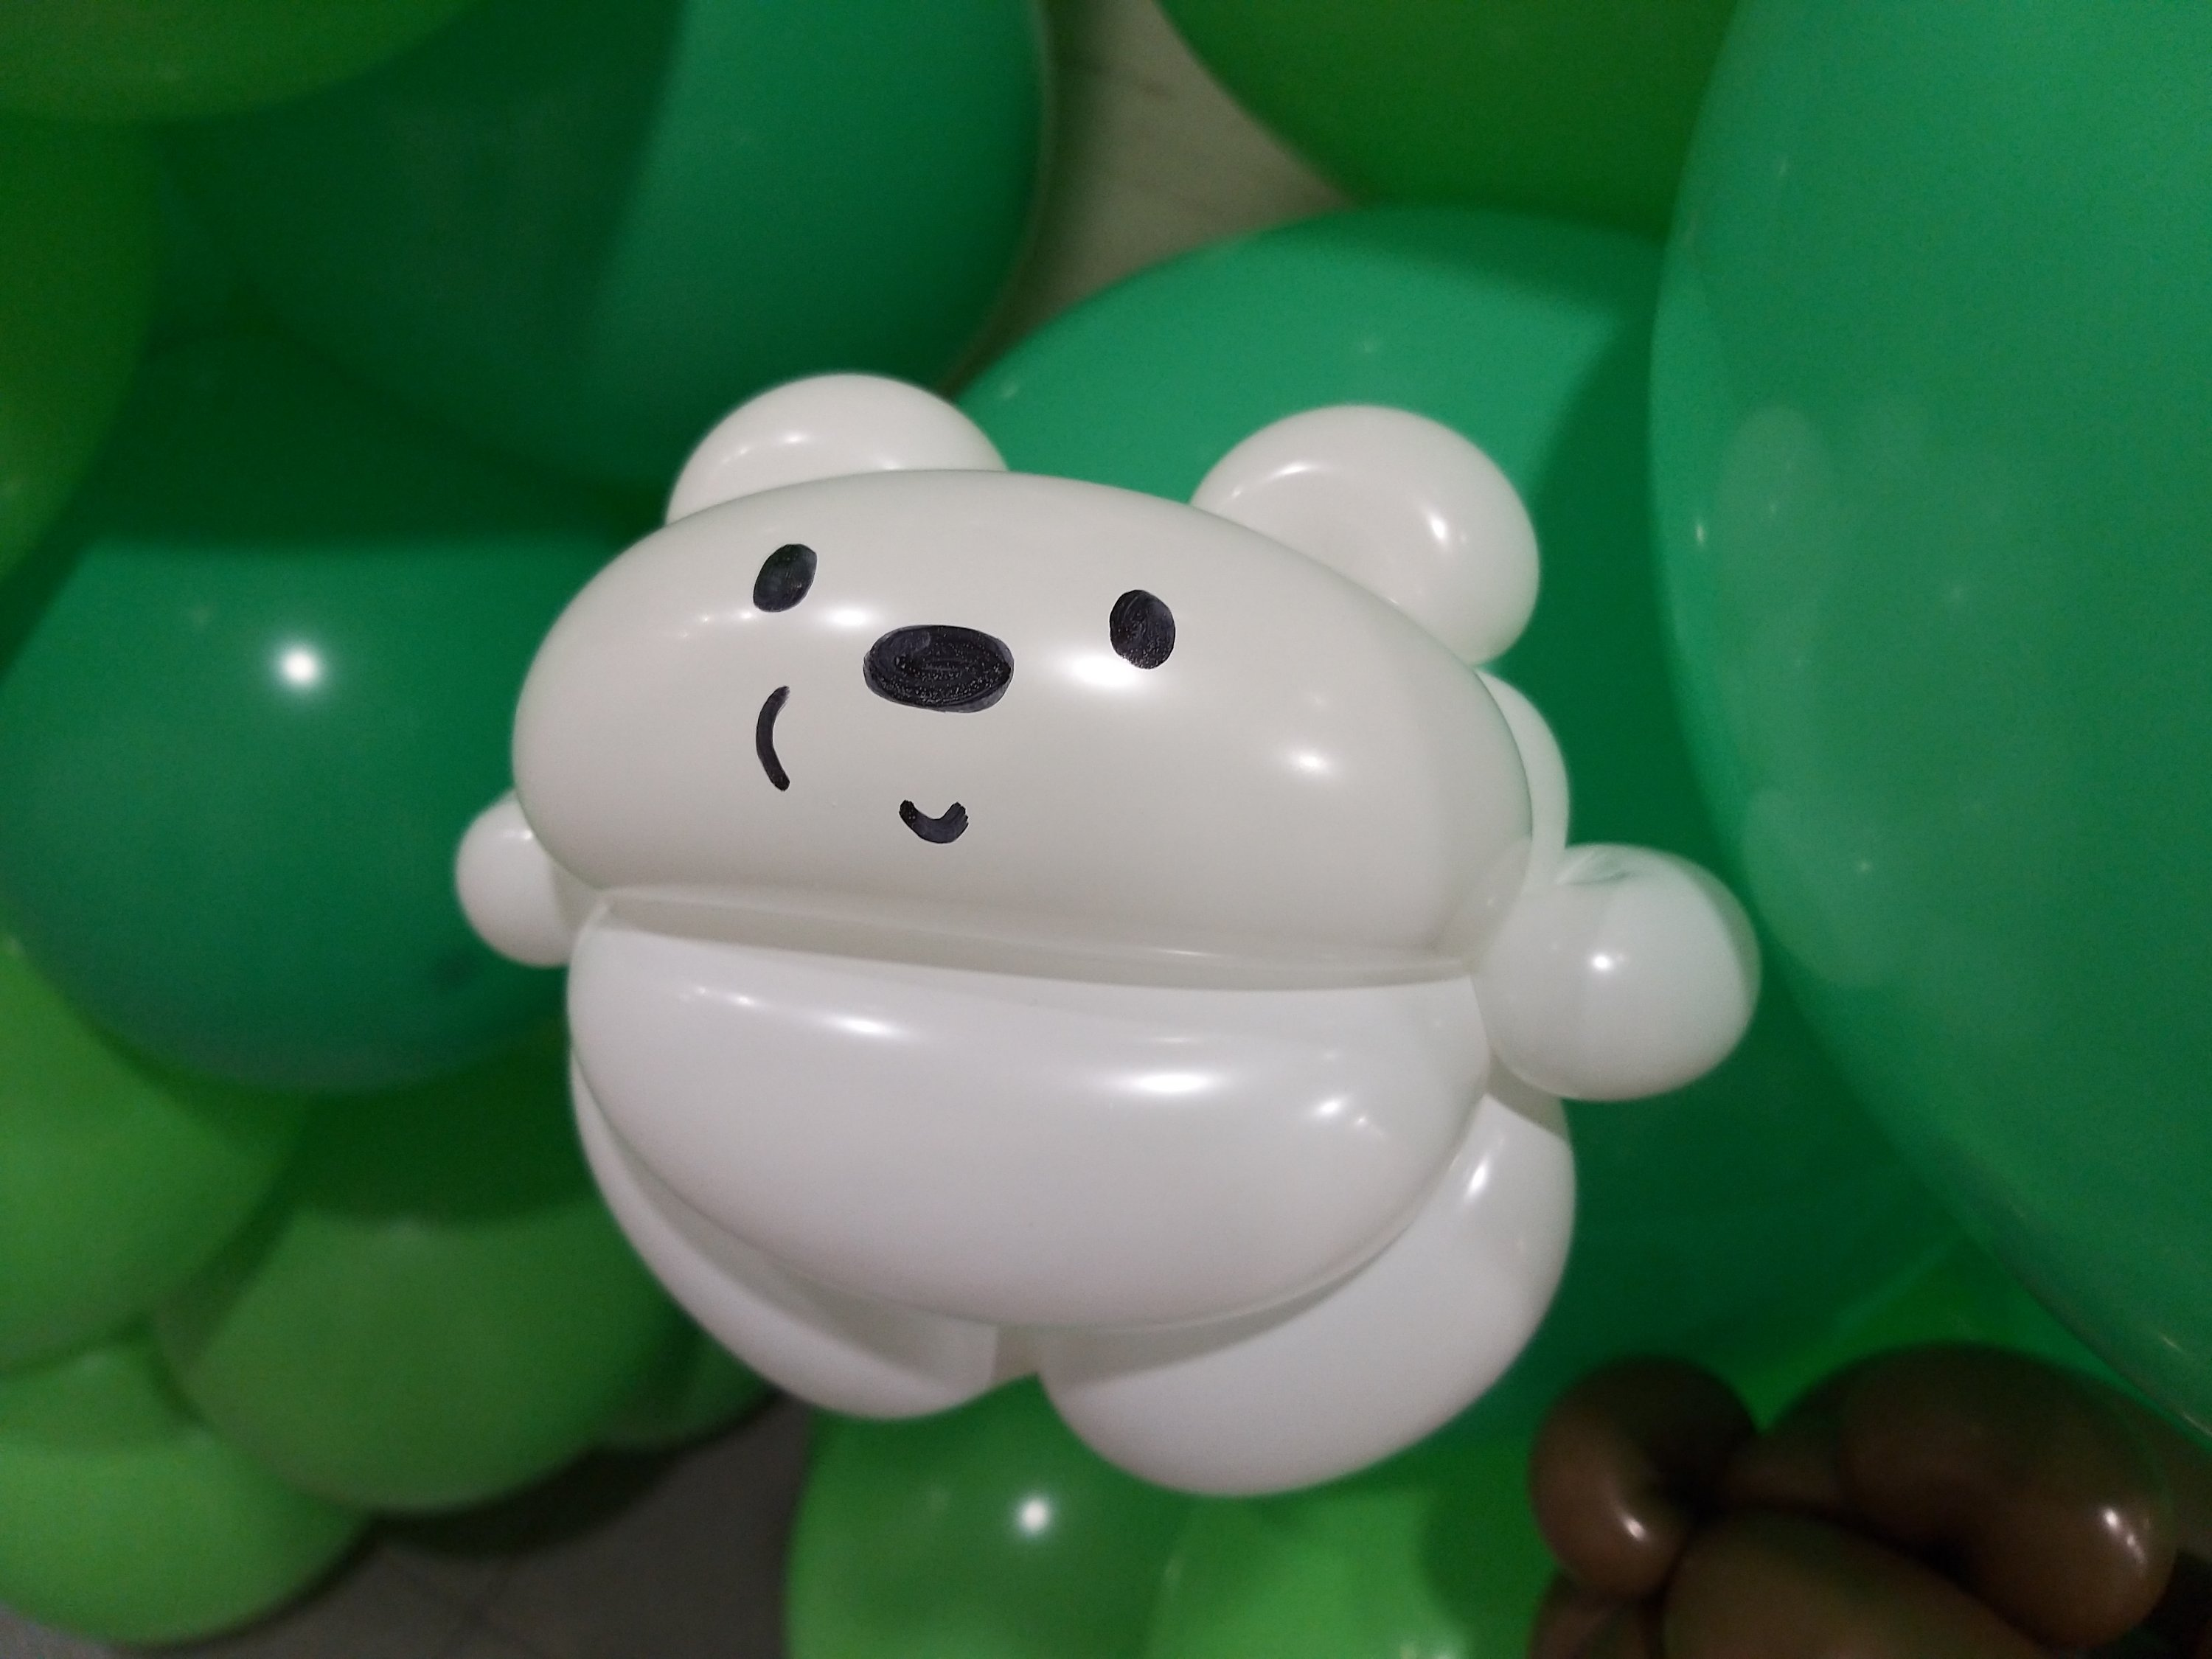 , We Bare Bears balloon decorations for a birthday party!, Singapore Balloon Decoration Services - Balloon Workshop and Balloon Sculpting